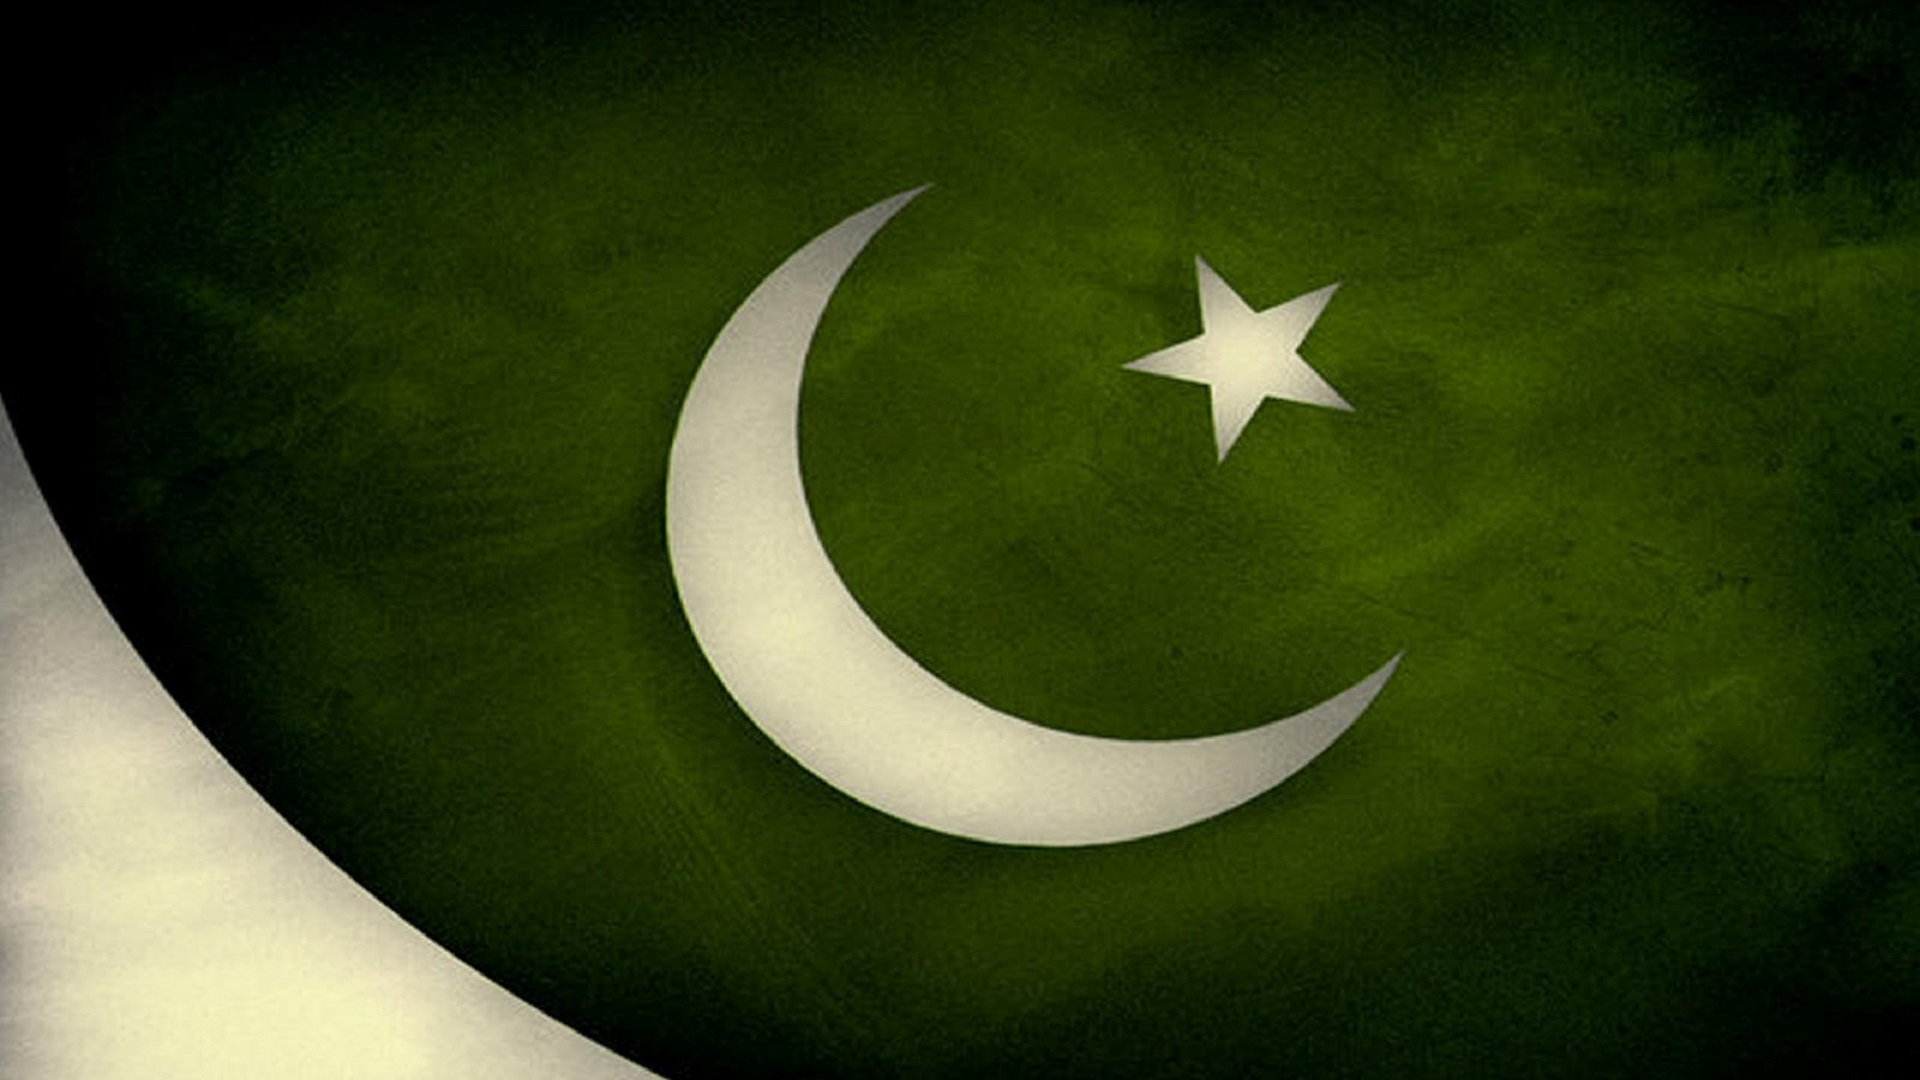 Pakistan Flag HD Images Wallpapers amp Pics   14 Aug Images 1920x1080